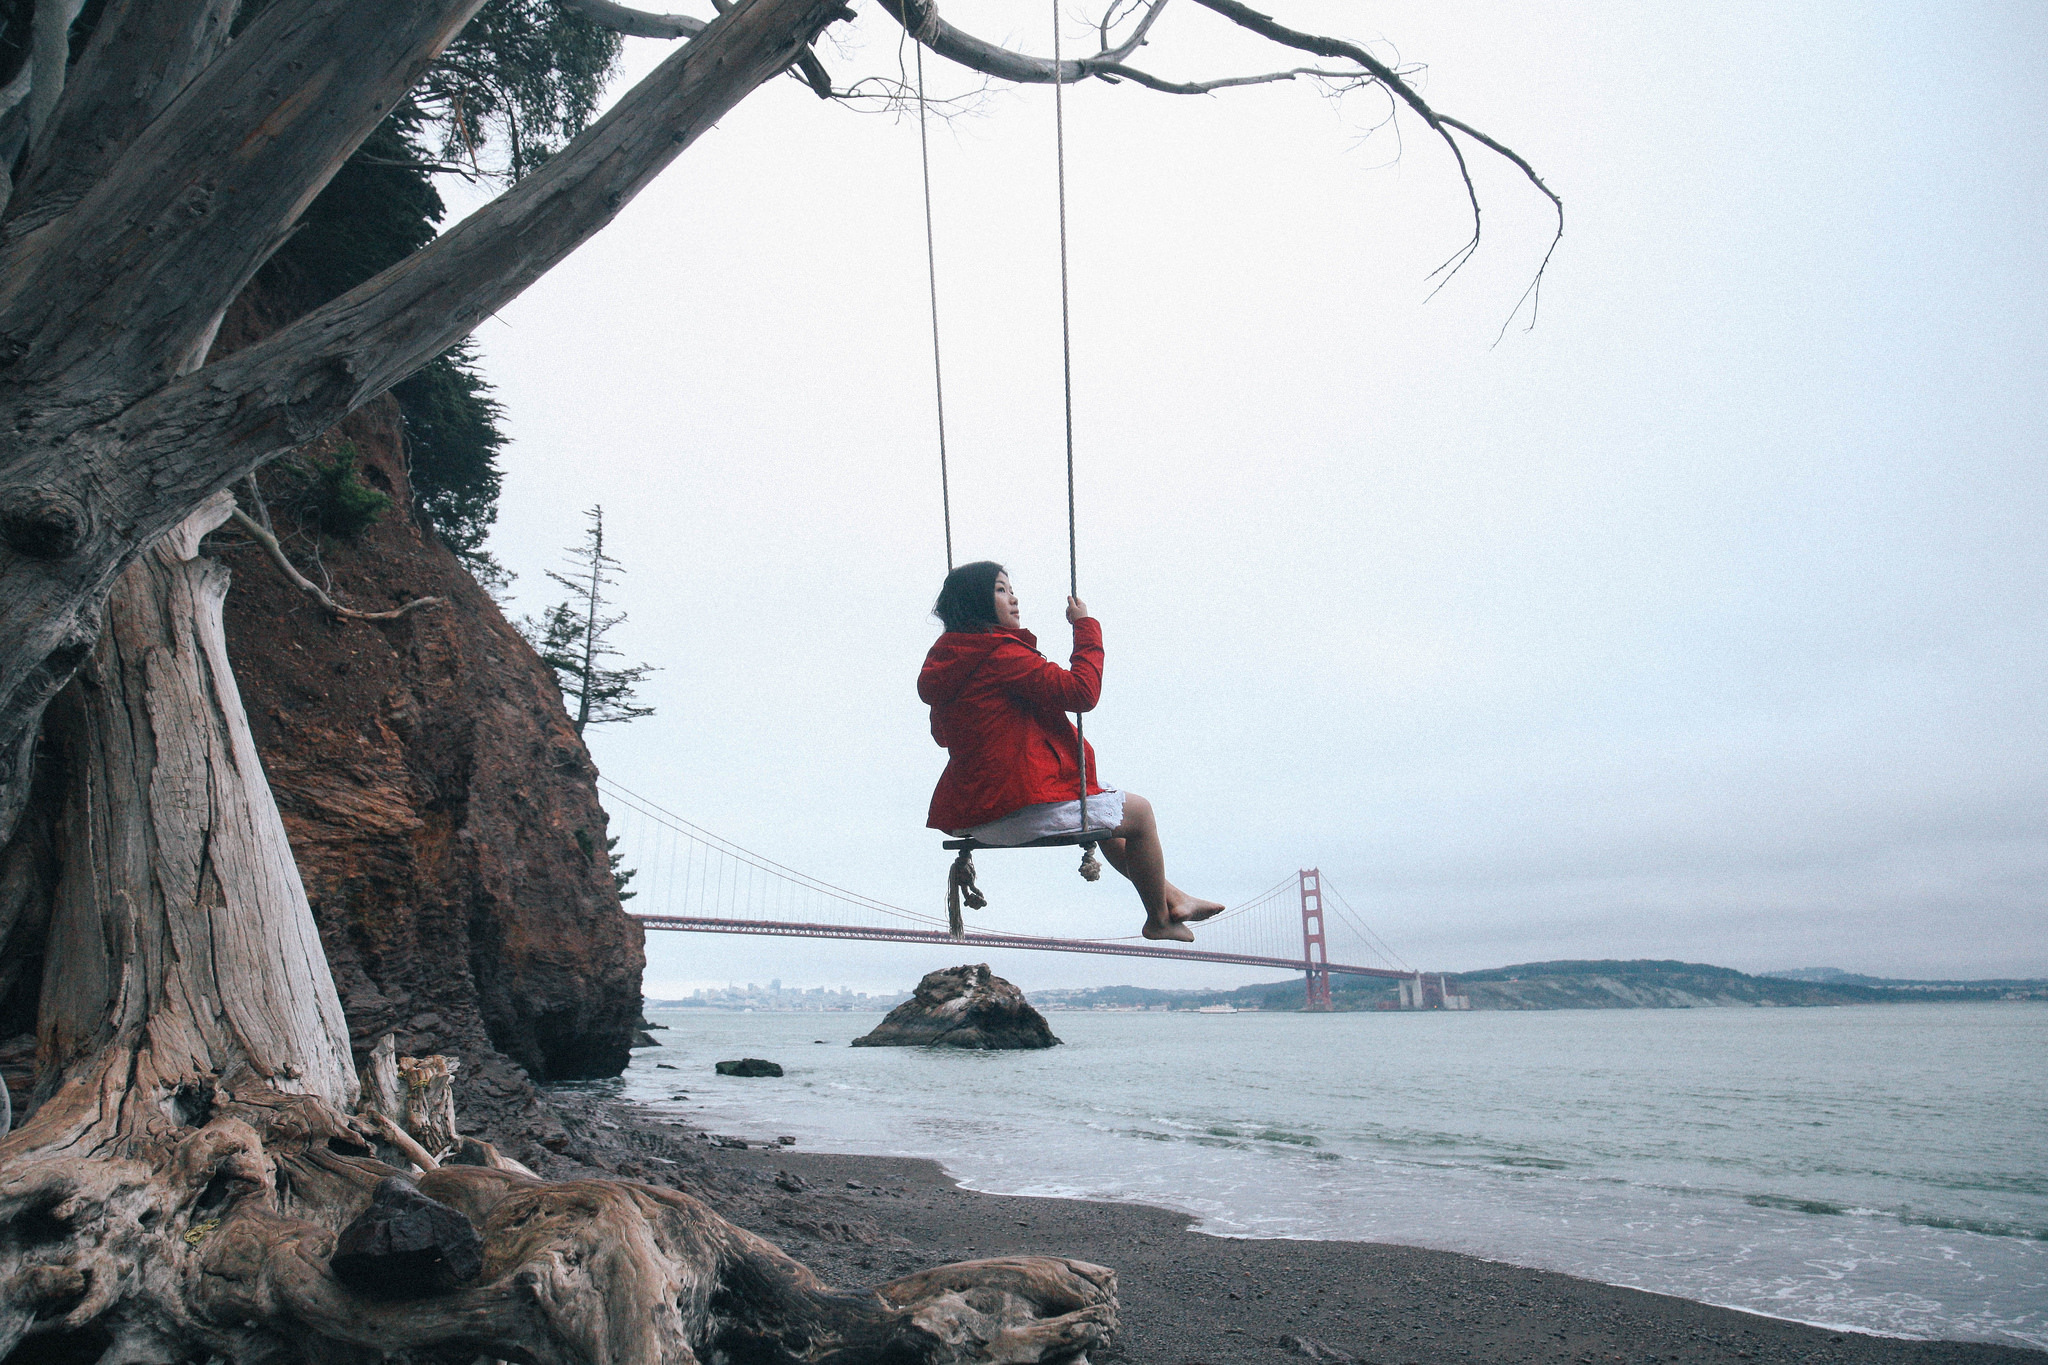 Hike to these hidden rope swings with gorgeous views of the Bay Area